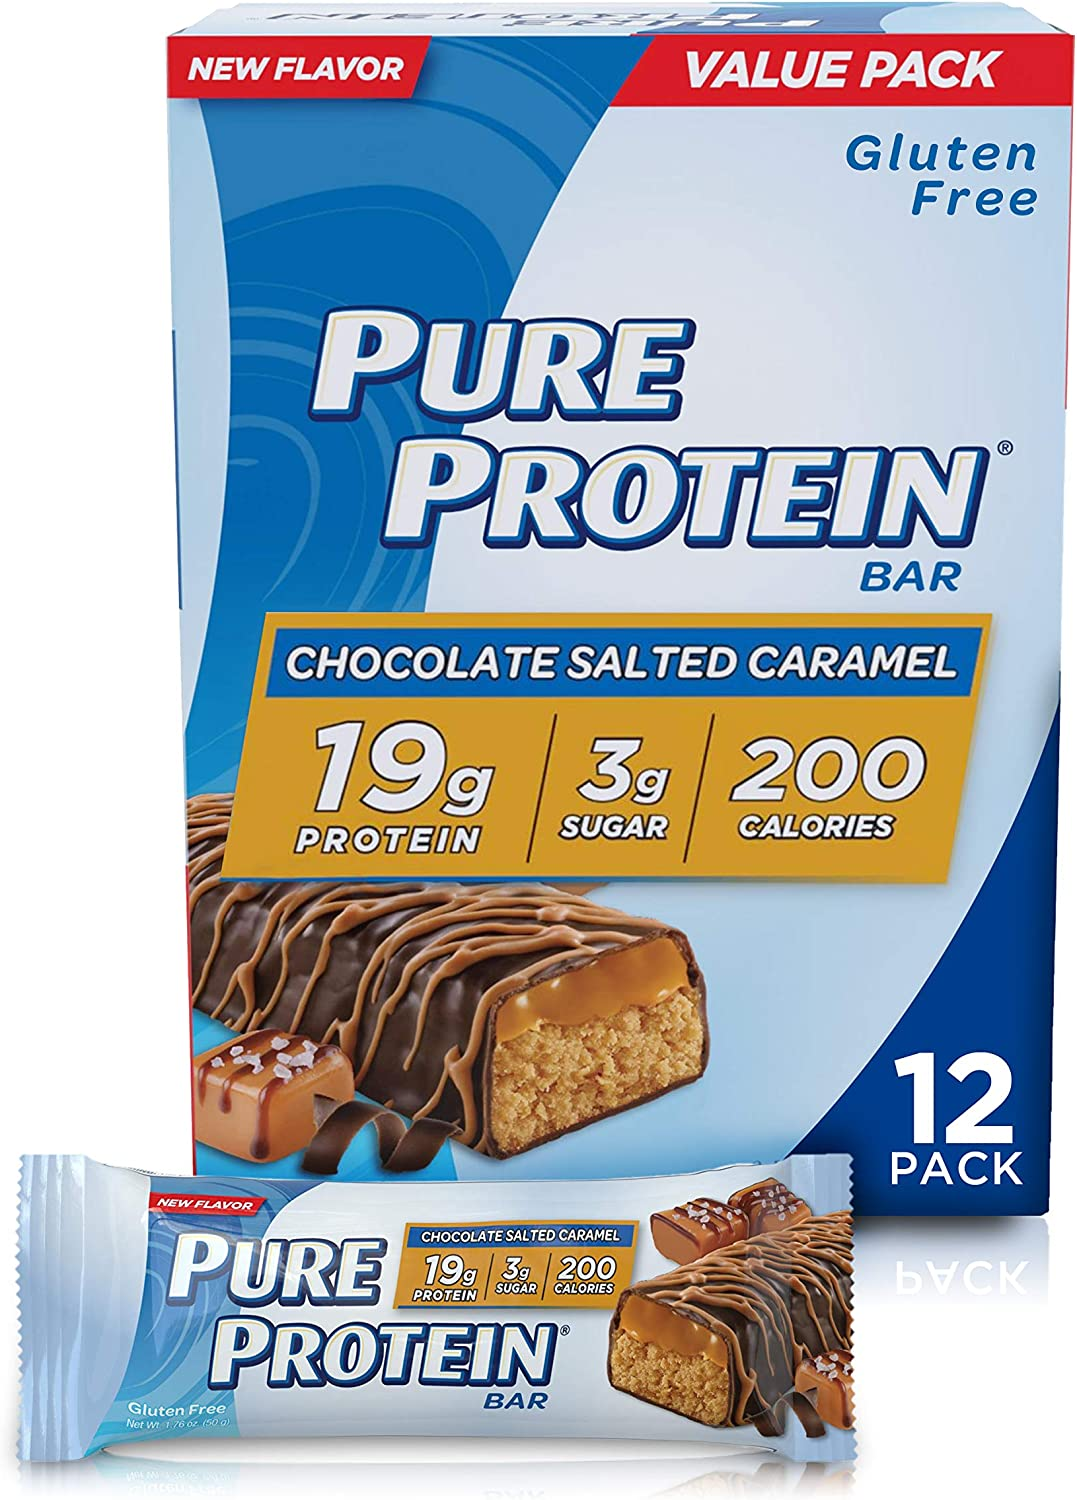 Pure Protein Bars, High Protein, Nutritious Snacks to Support Energy, Low Sugar, Gluten Free, Chocolate Salted Caramel, 1.76oz, 12 Pack